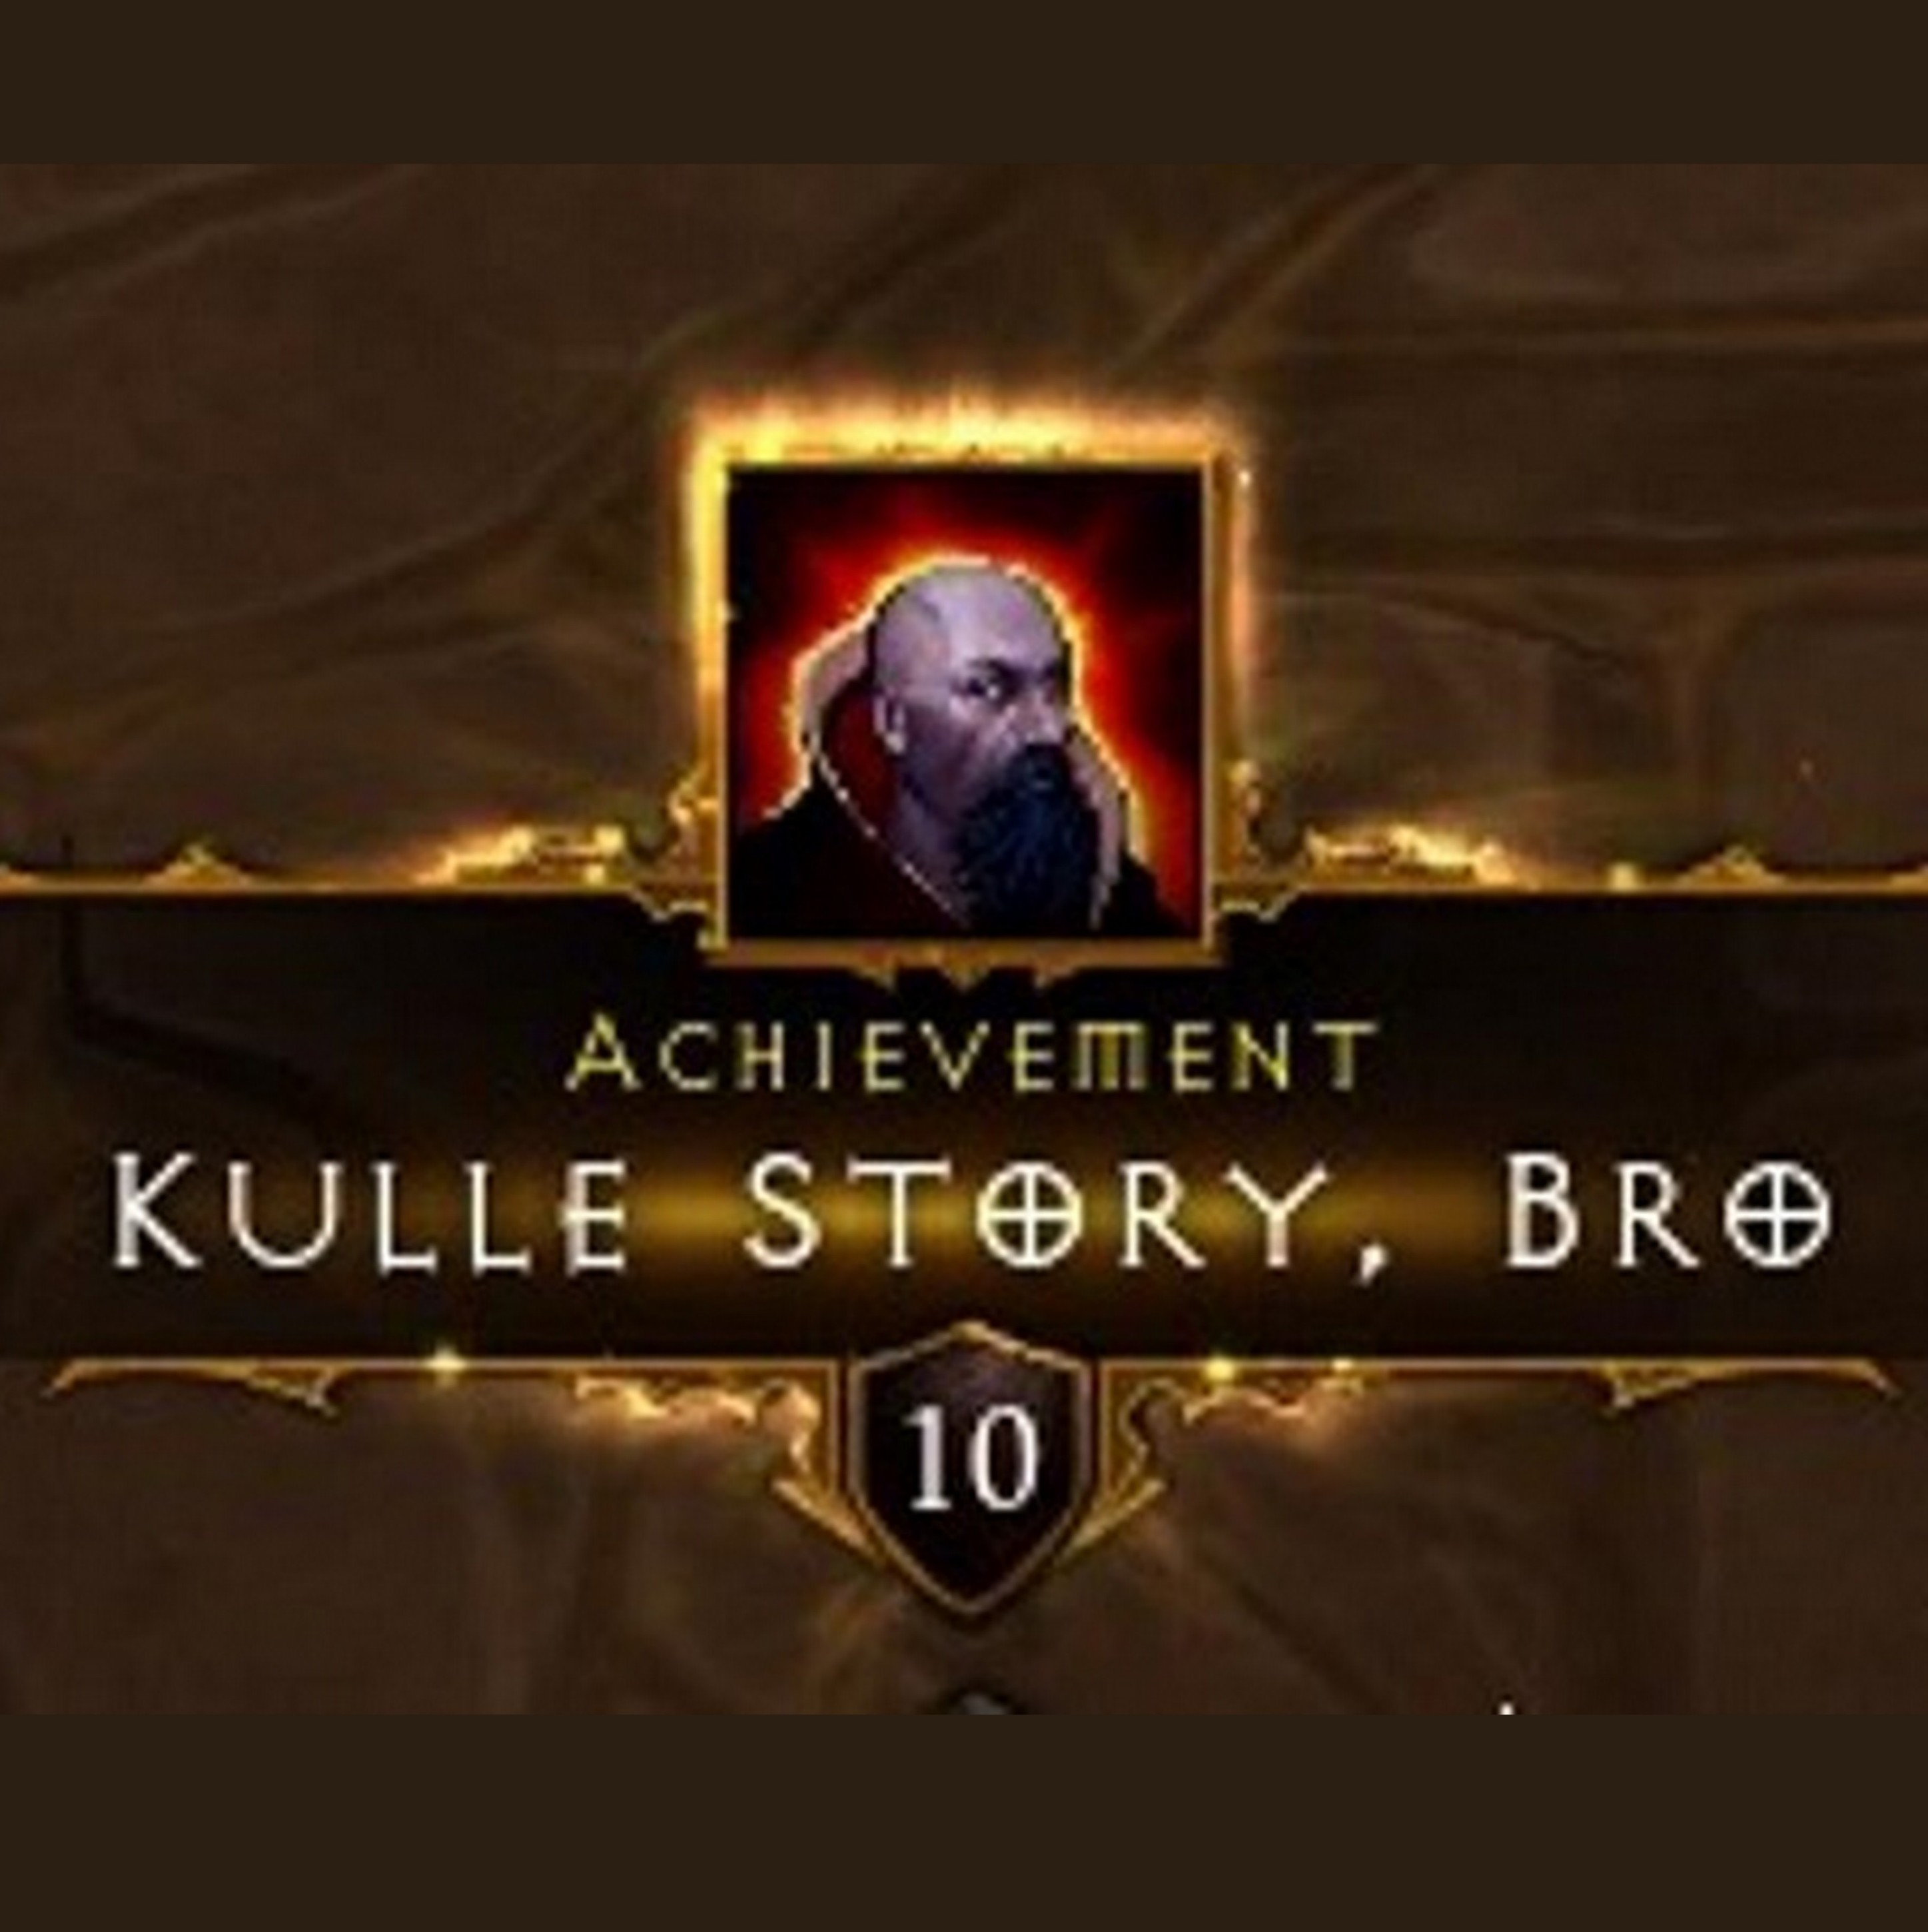 Kulle Story Bro - A Diablo 3 Podcast Episode 28